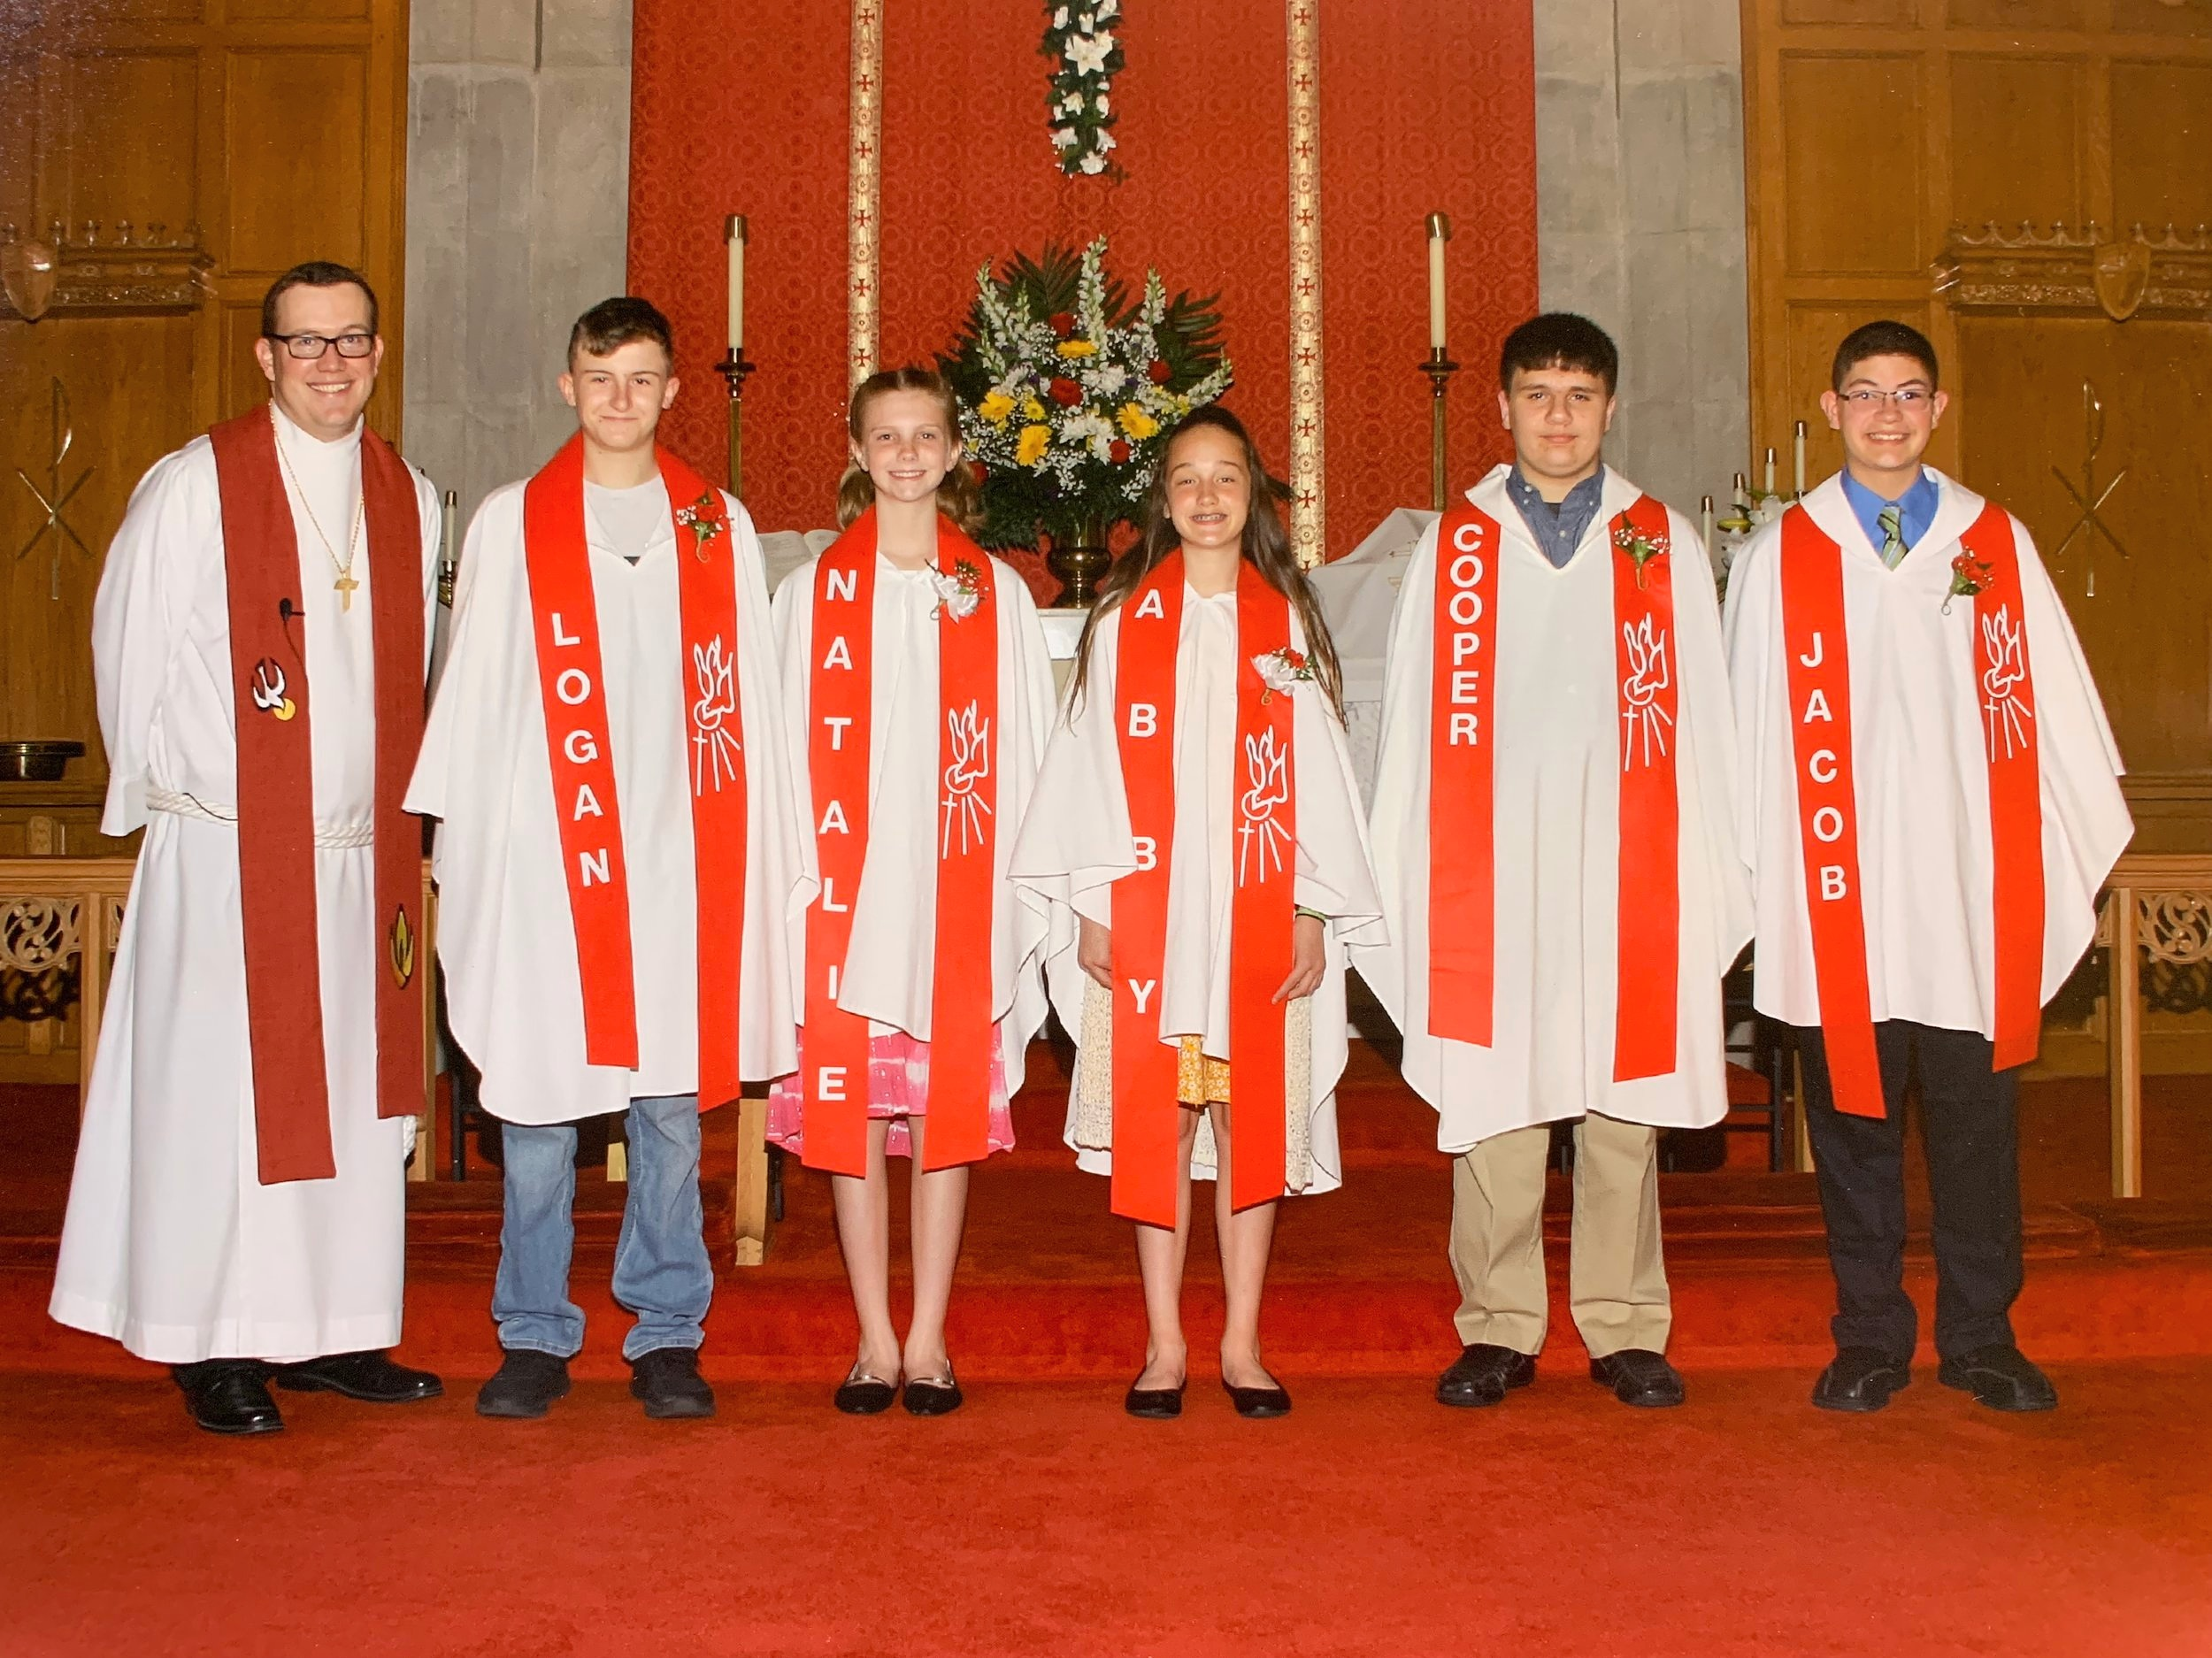 Youth Confirmation Class - Wednesdays from 6-7:15 pm from September-May. Our new year of confirmation begins on September 4! Confirmation class is offered for students beginning in their 6th grade year and usually lasts two years. Contact: Pastor Wilson